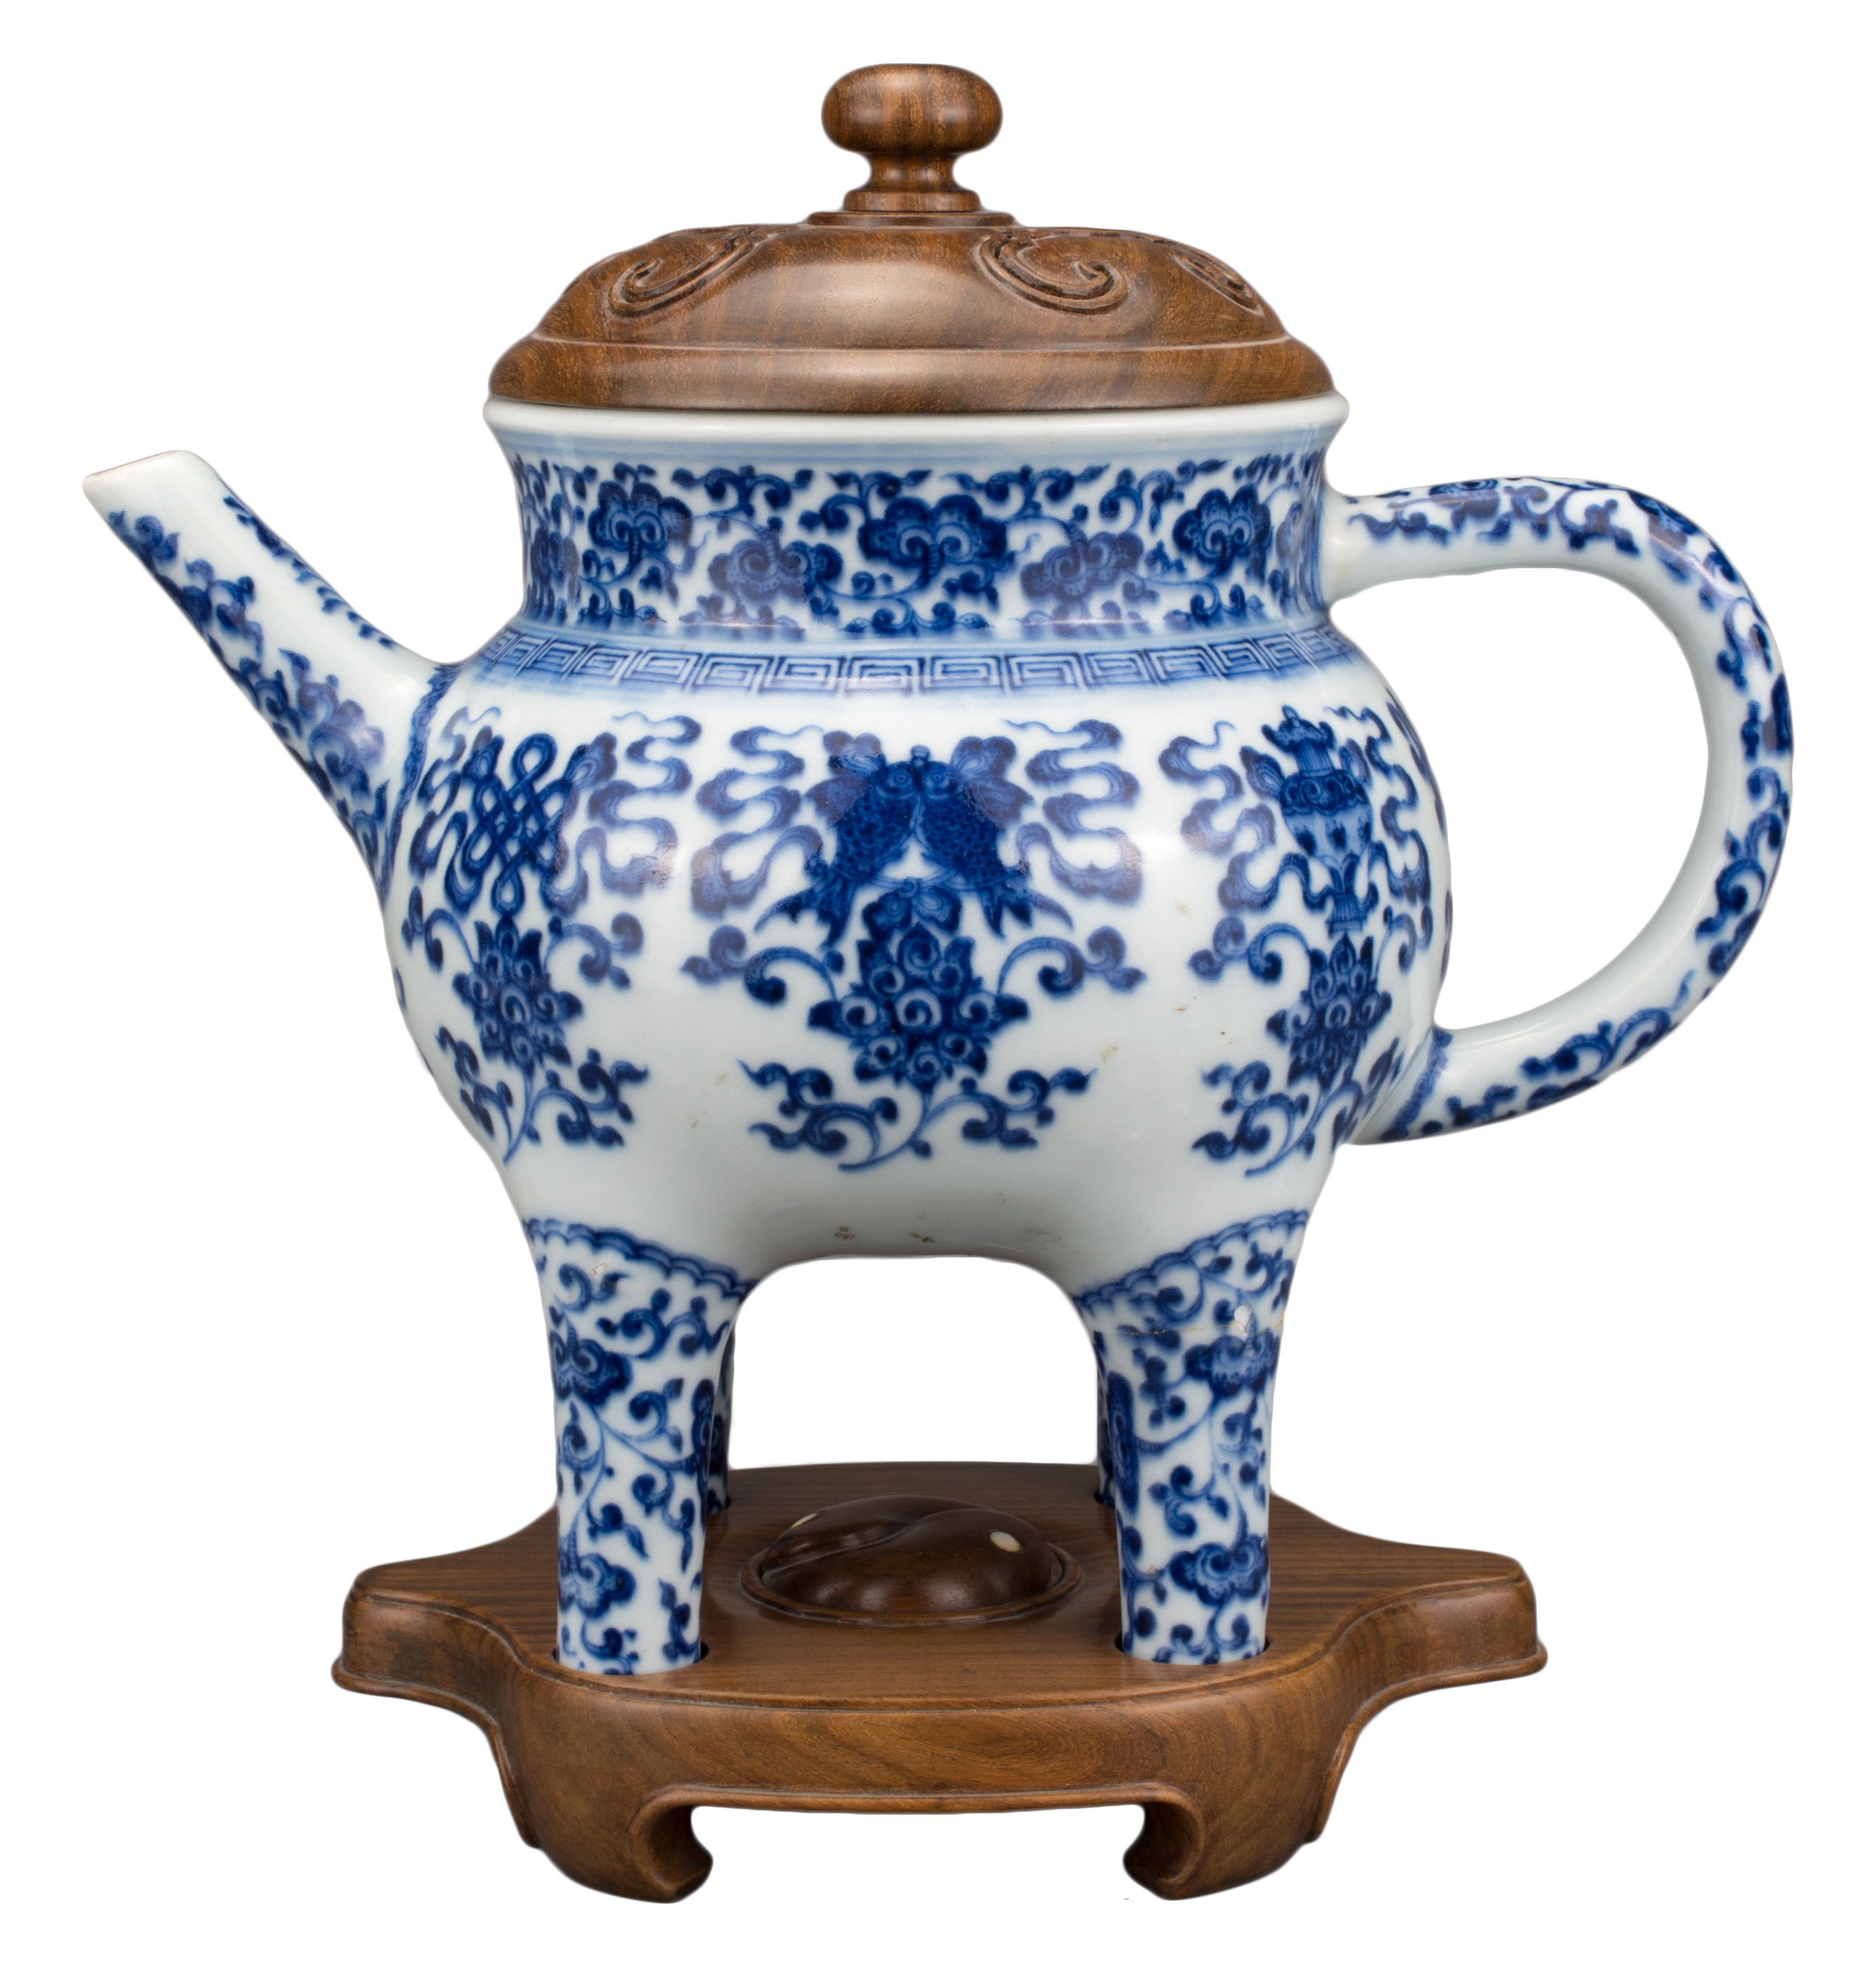 CHINESE BLUE AND WHITE PORCELAIN 'BAJIXIANG' EWER,